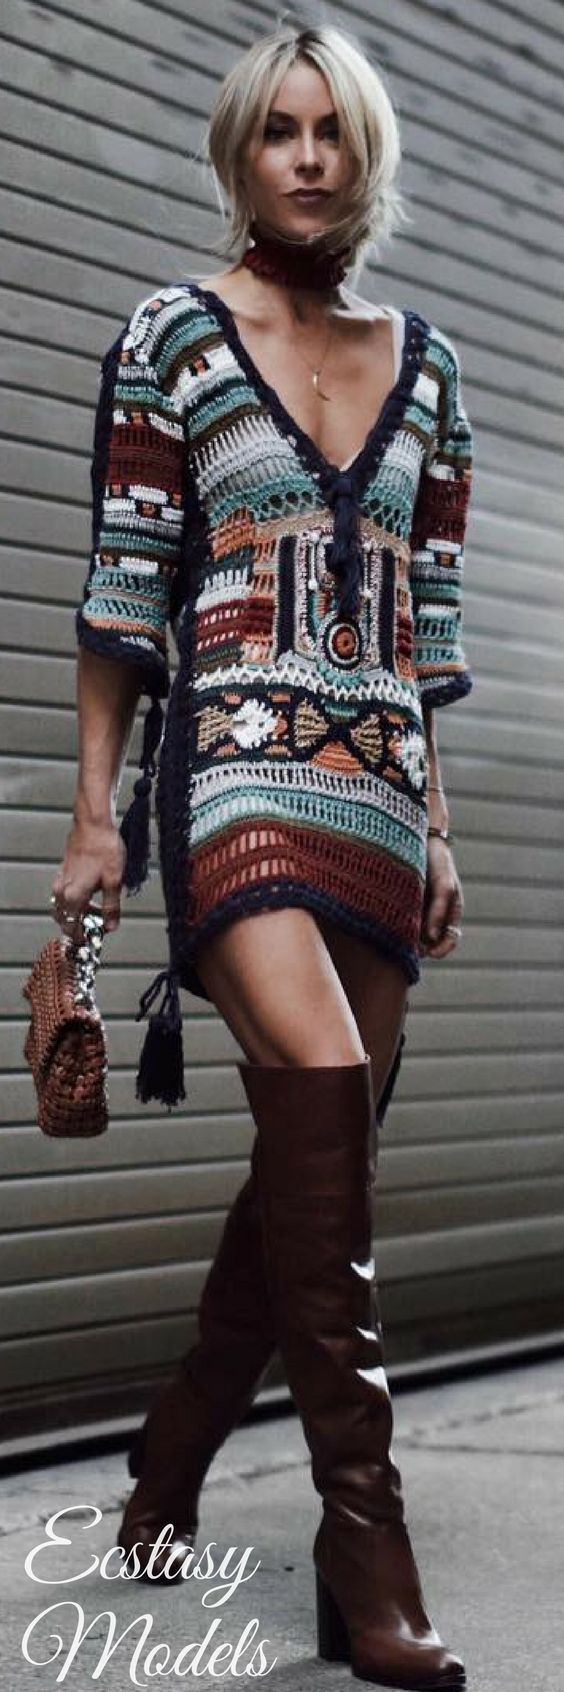 Crochet // Fashion Look by Mary Seng